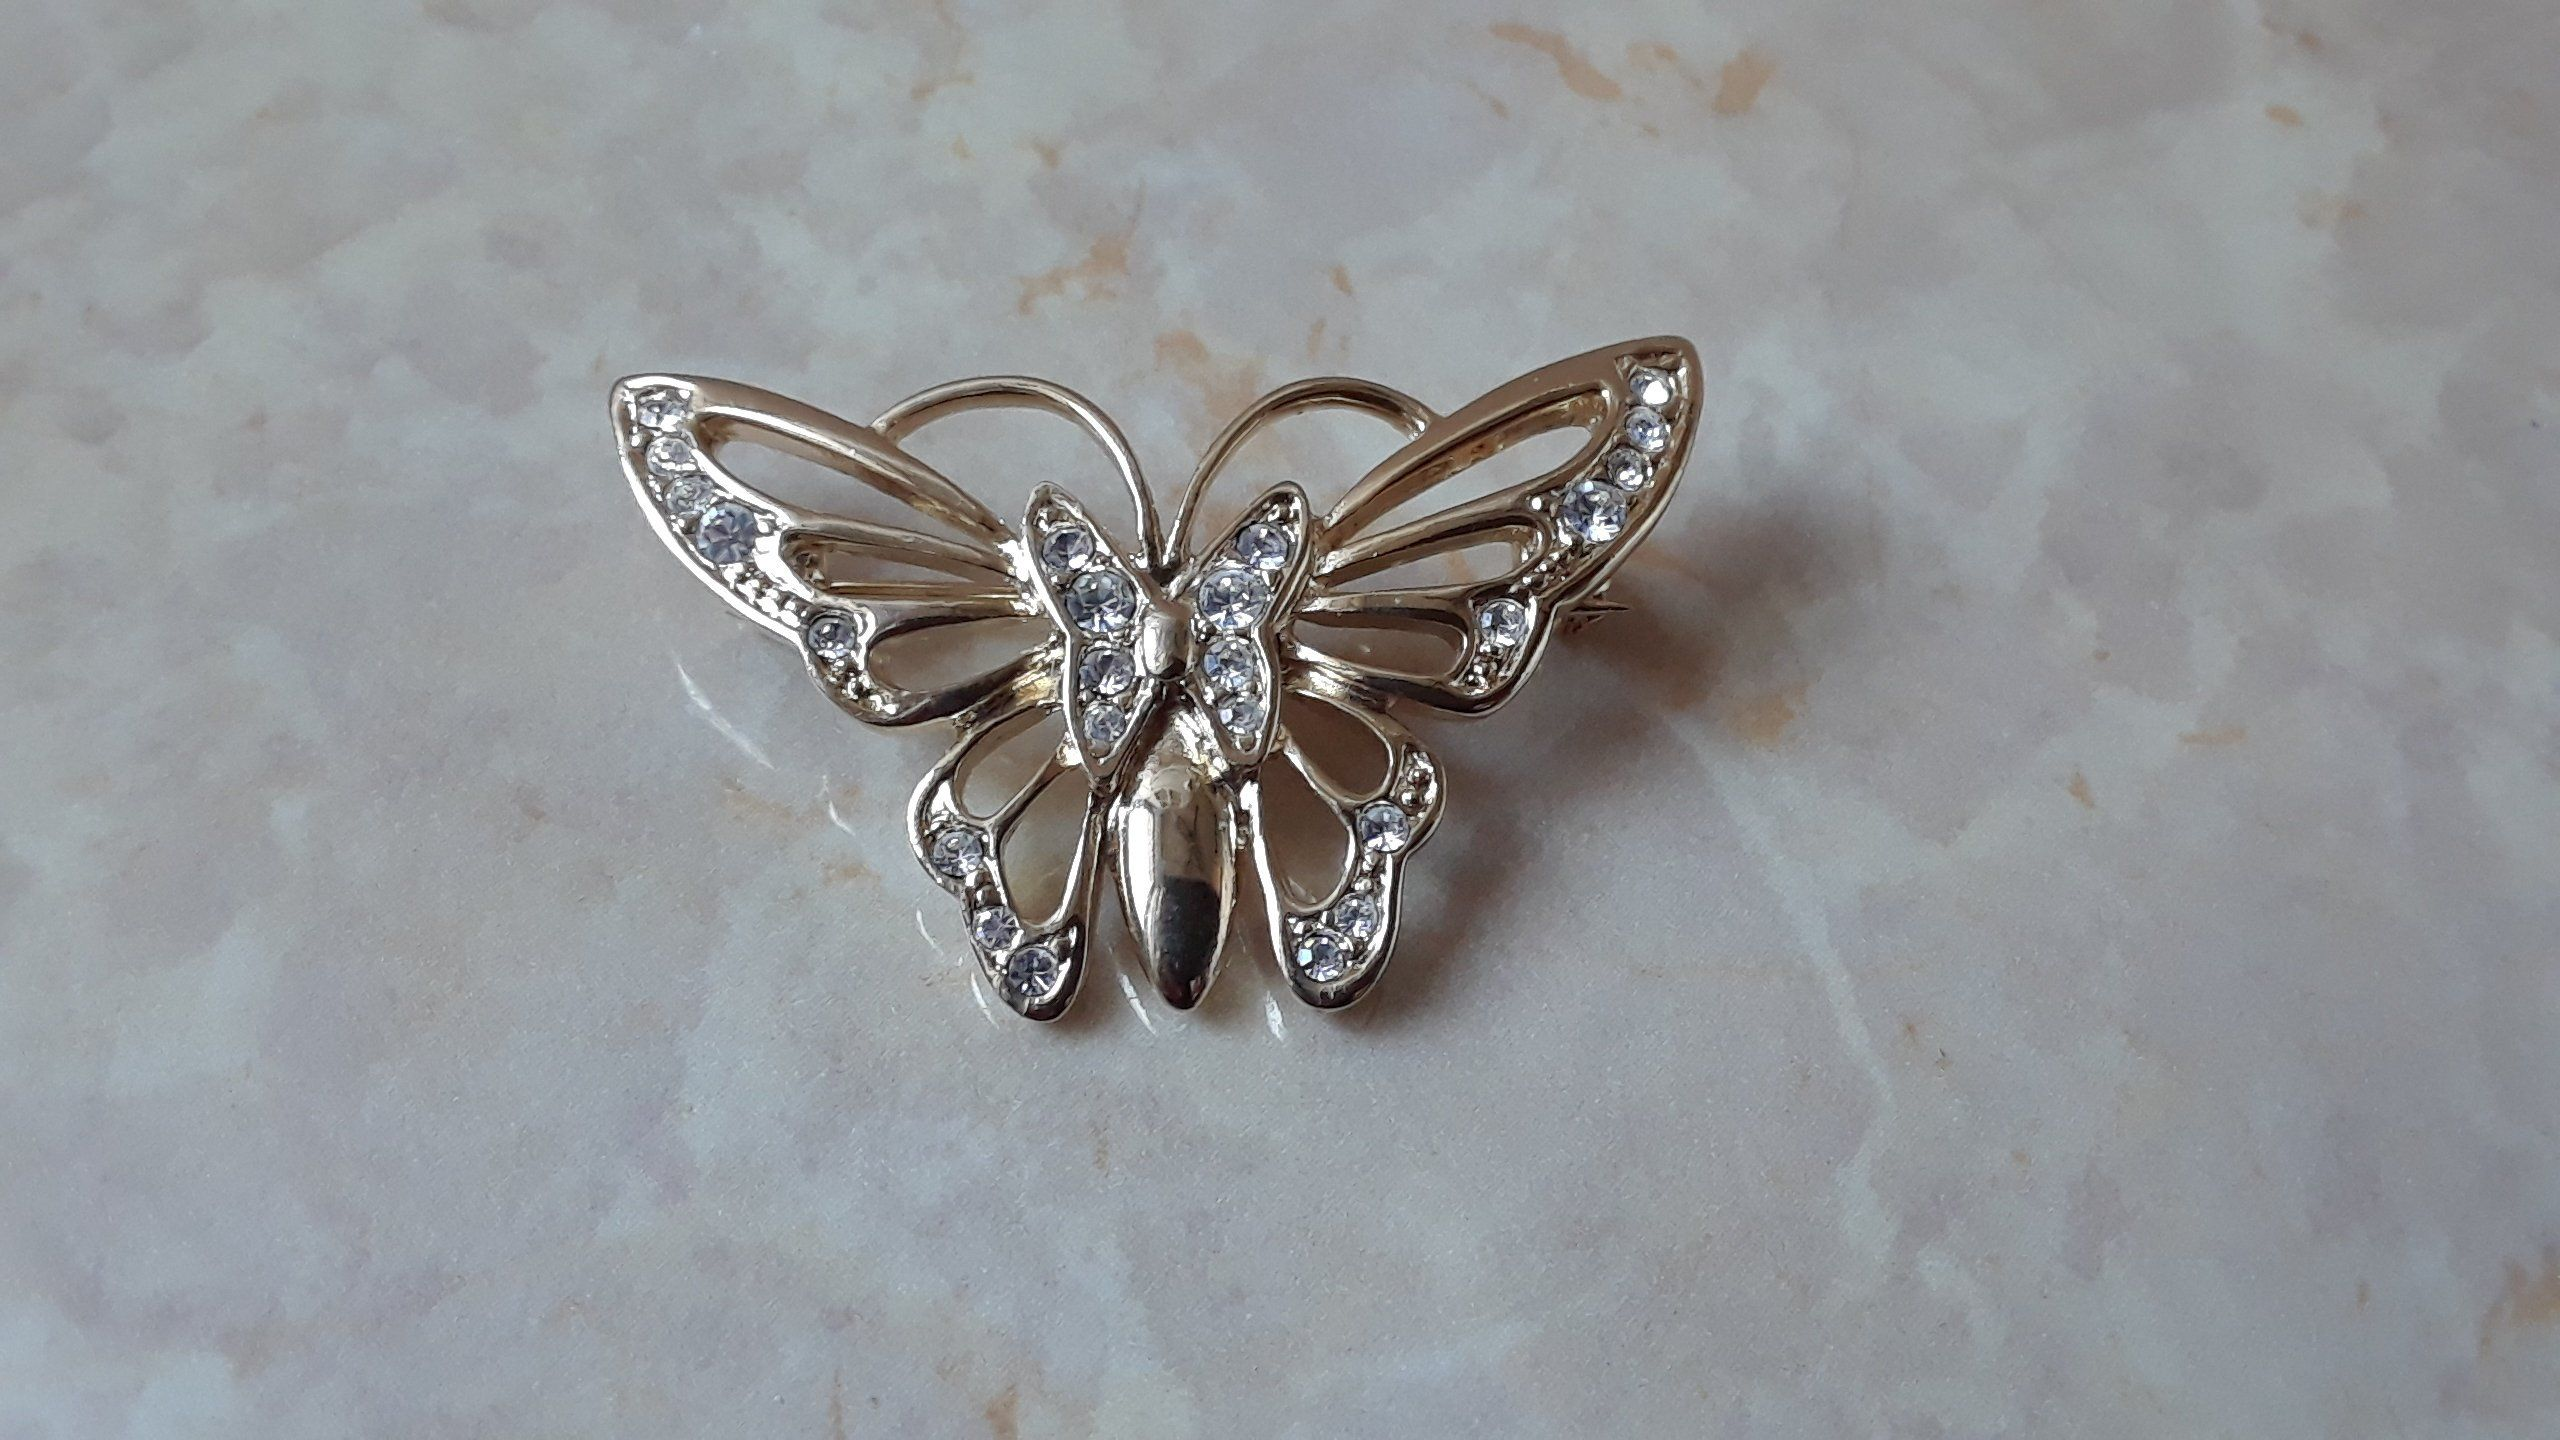 a9b39f78f8c Vintage Butterfly Brooch w/ Crystals, Jeweled Butterfly Pin, Gold Tone Metal  Butterfly Lapel Pin w/ Rhinestones, Insect Fashion Accessories by  TrendyThangz ...